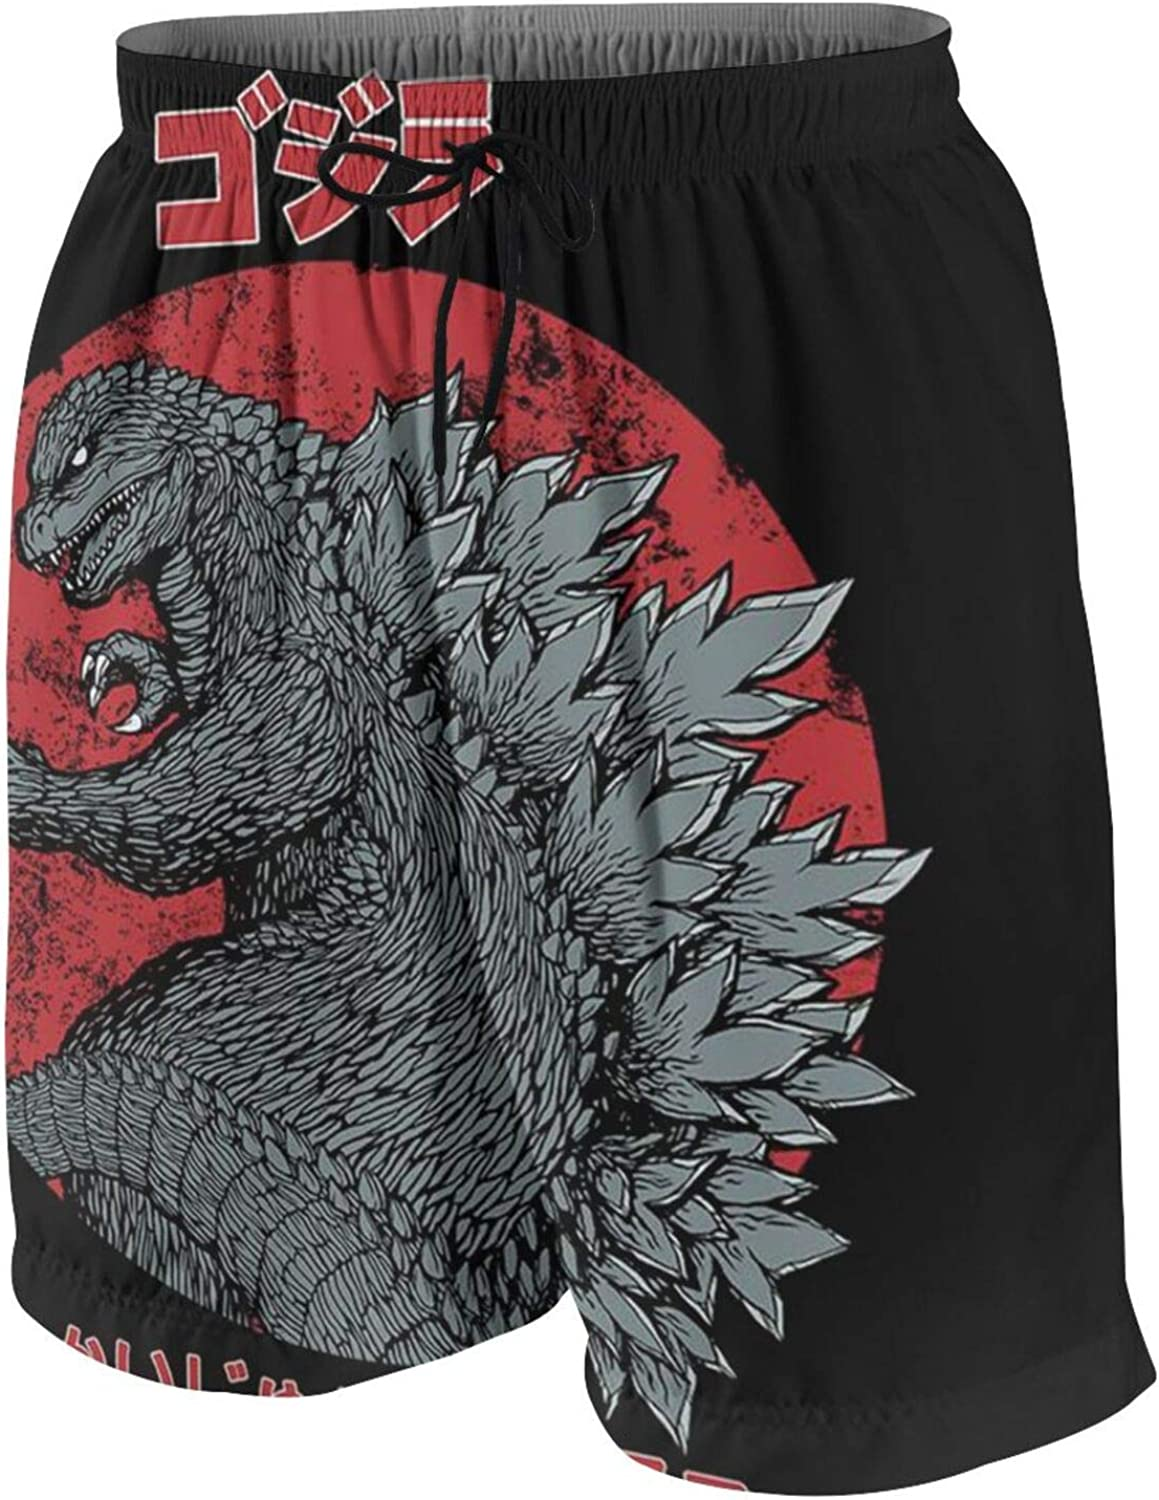 GHYGTY God-Zilla Shorts Drawstring Quick Dry Beach Shorts with Pockets Swim Trunks for Teens Boy